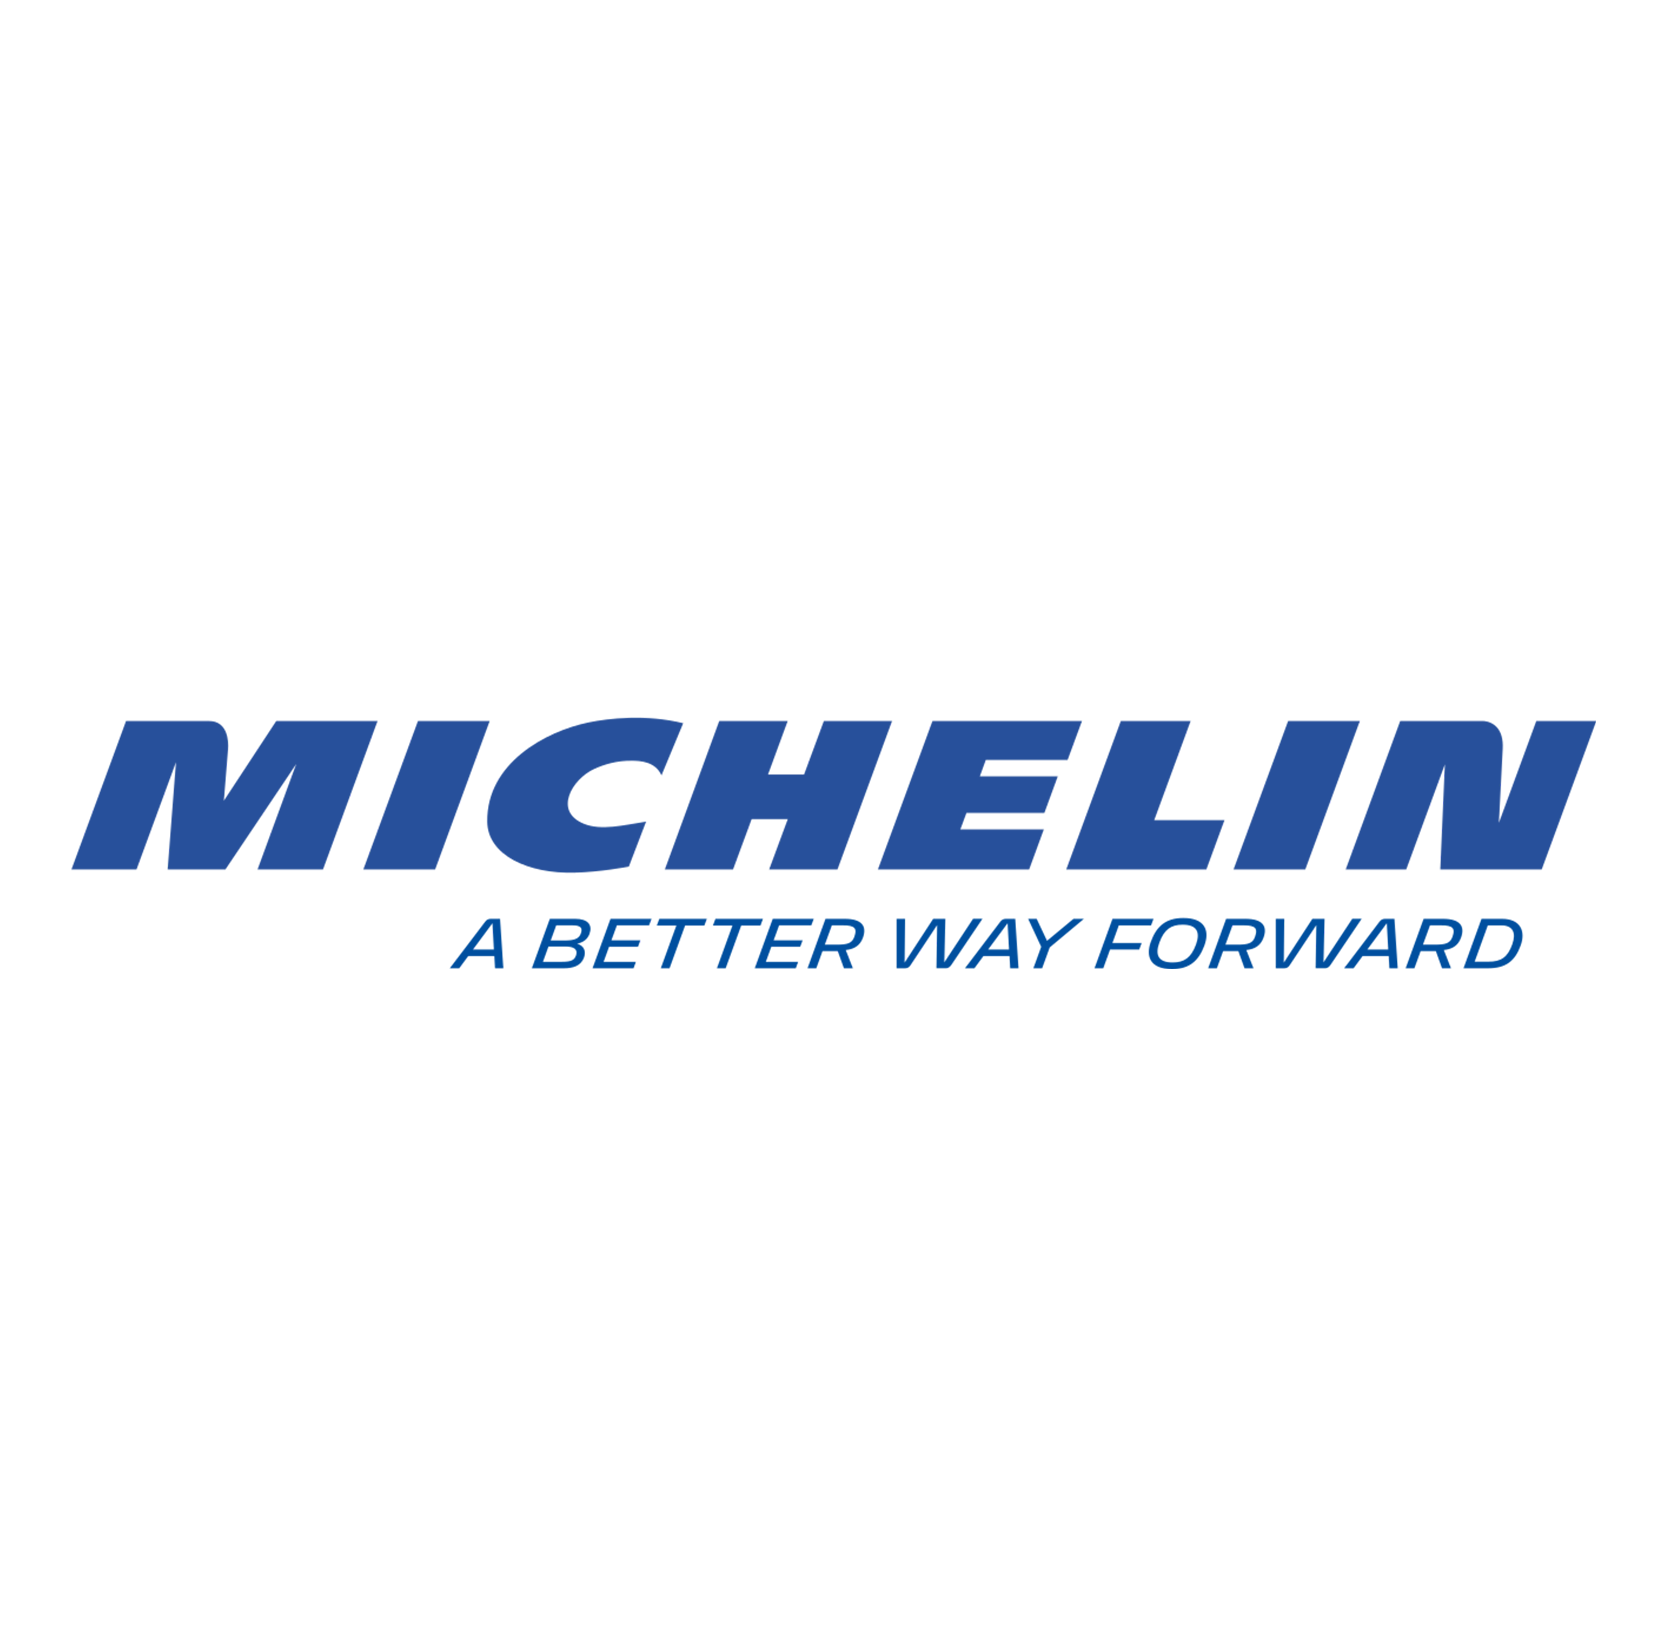 Micheline.png